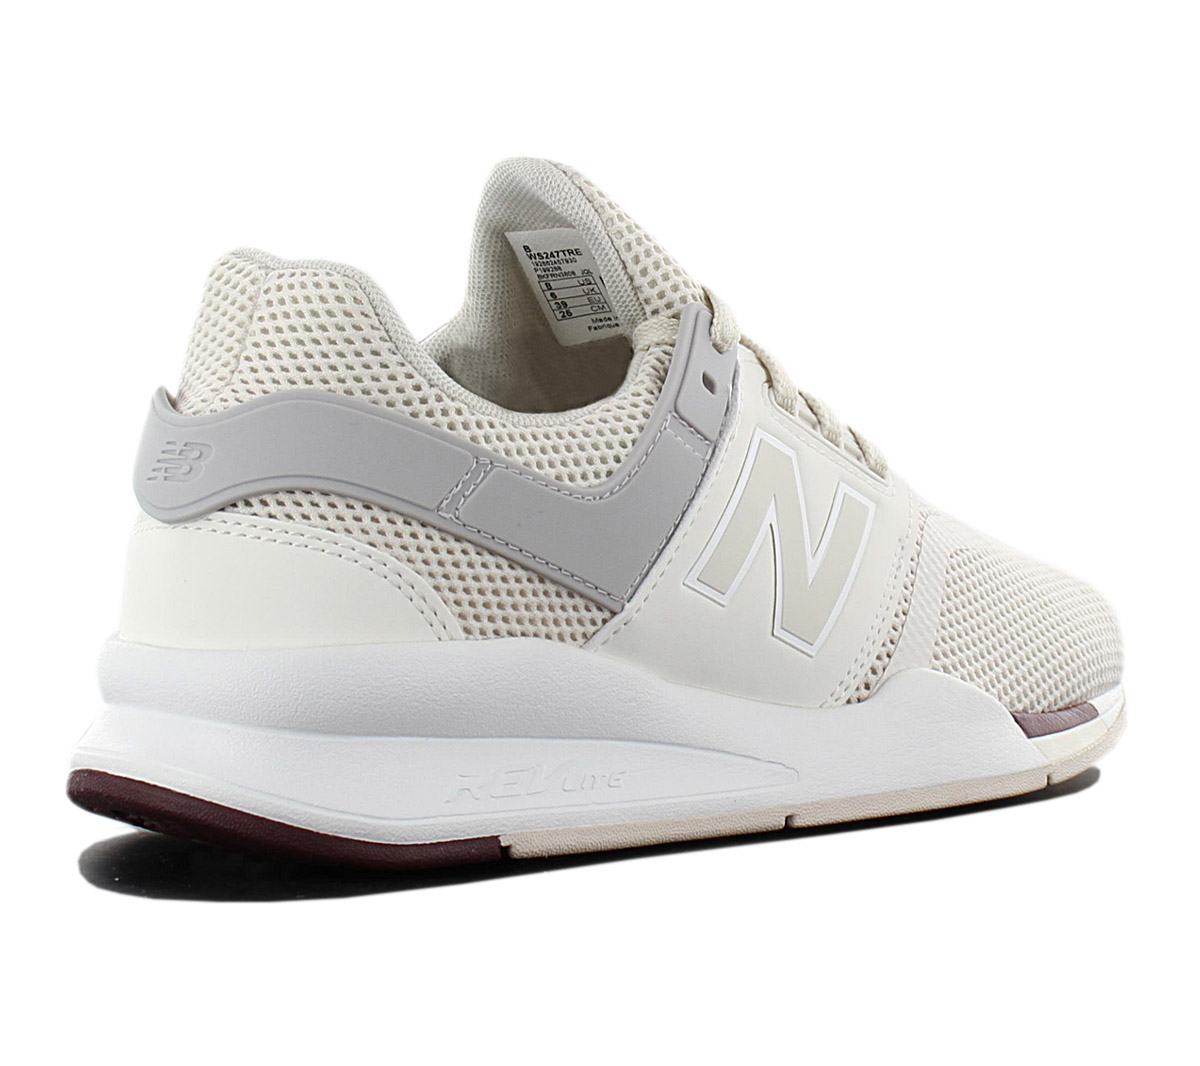 Details about New balance 247 WS247TRE Women's Sneaker Beige Shoes Sneakers  Sports Shoes New